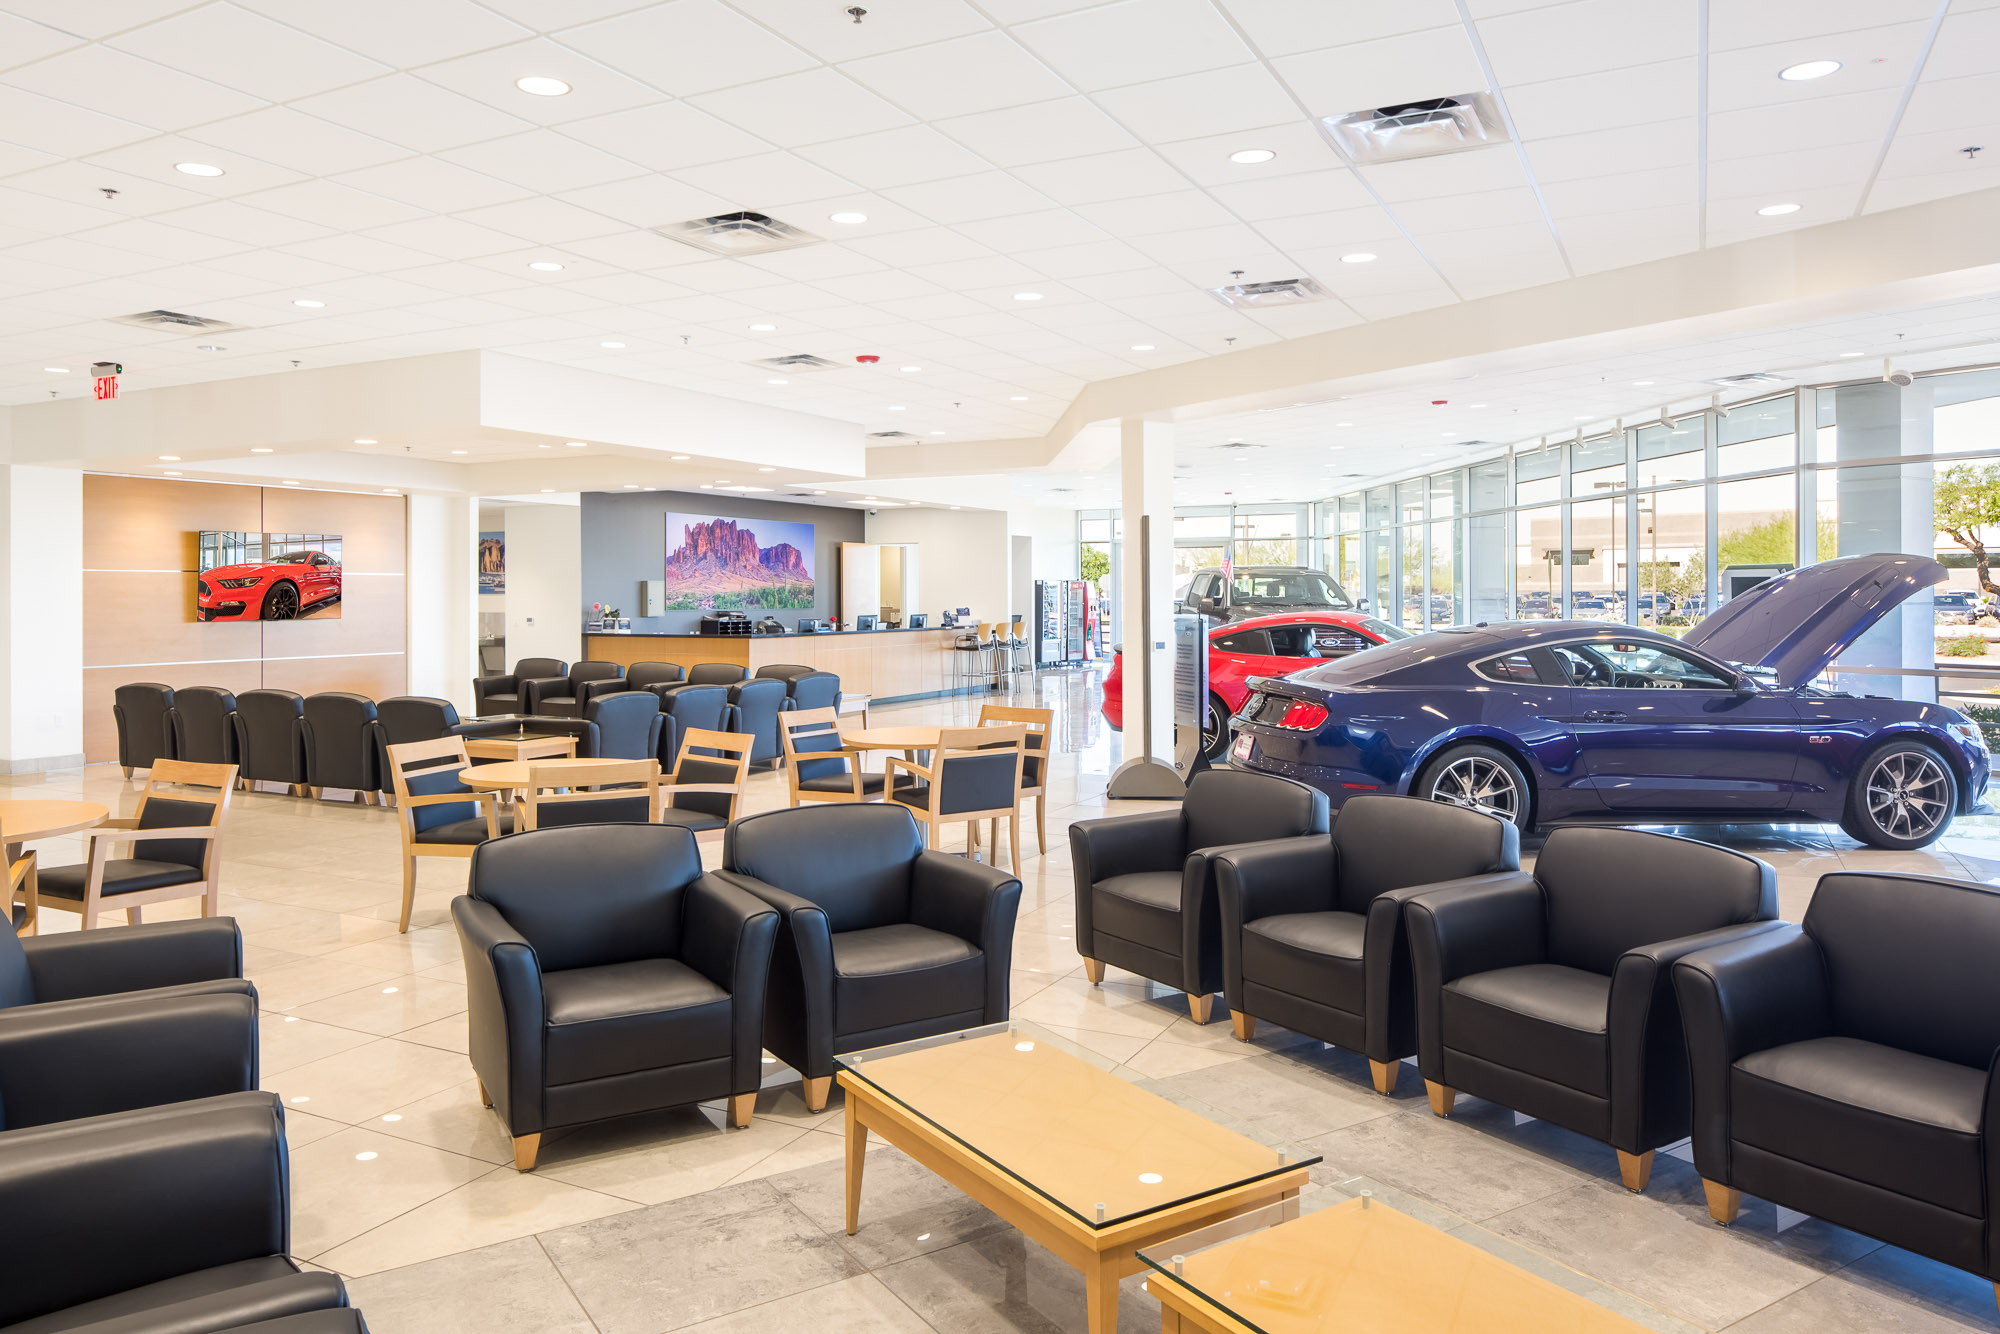 AutoNation Ford Scottsdale Serves The Areas Of Phoenix Glendale Mesa And Peoria Provides New Used Vehicles To Their Customers